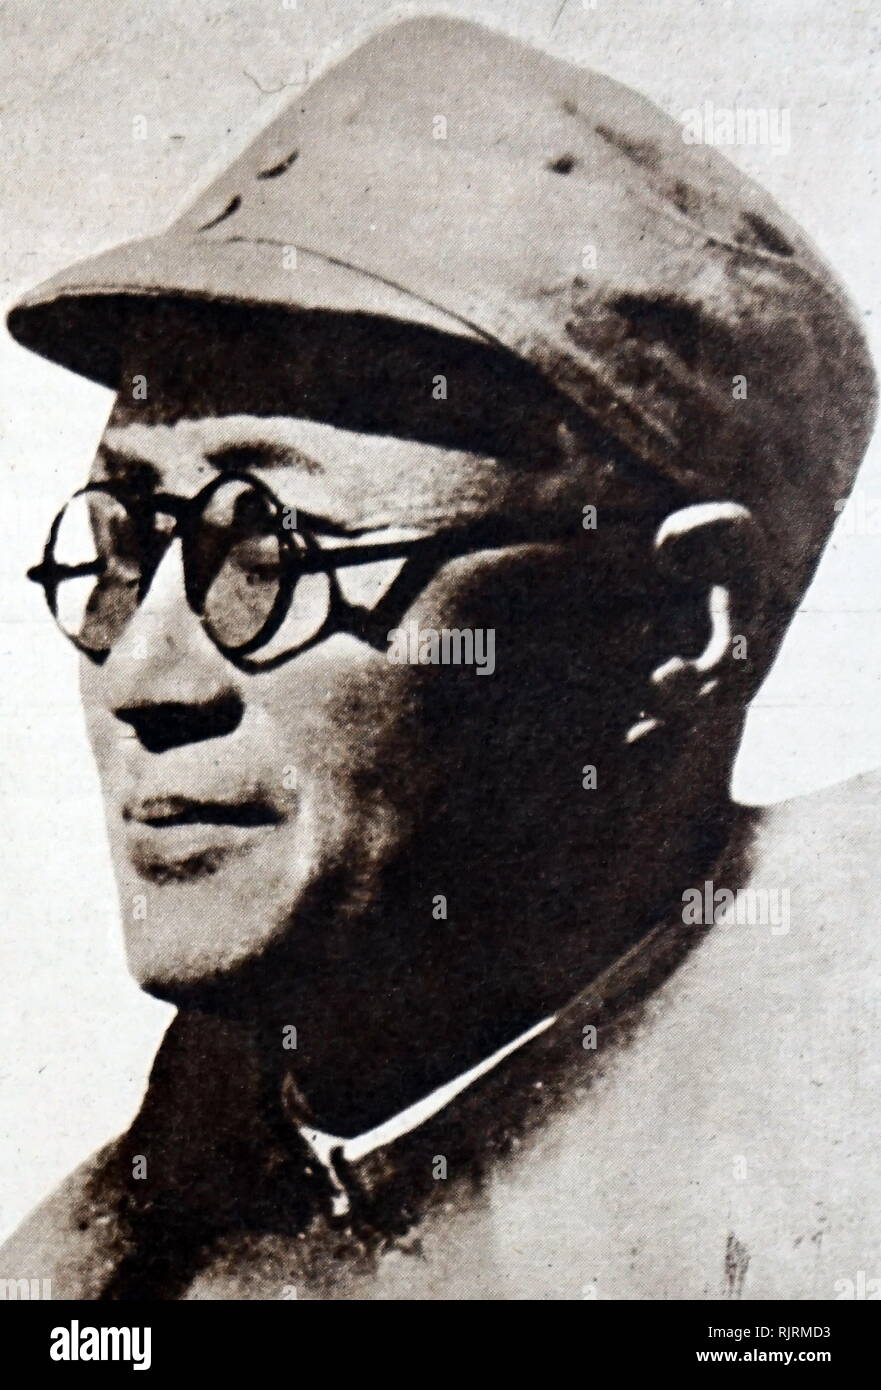 3b9caf0ff18 Liu Bocheng (1892 - 1986)  Chinese Communist military commander and Marshal  of the